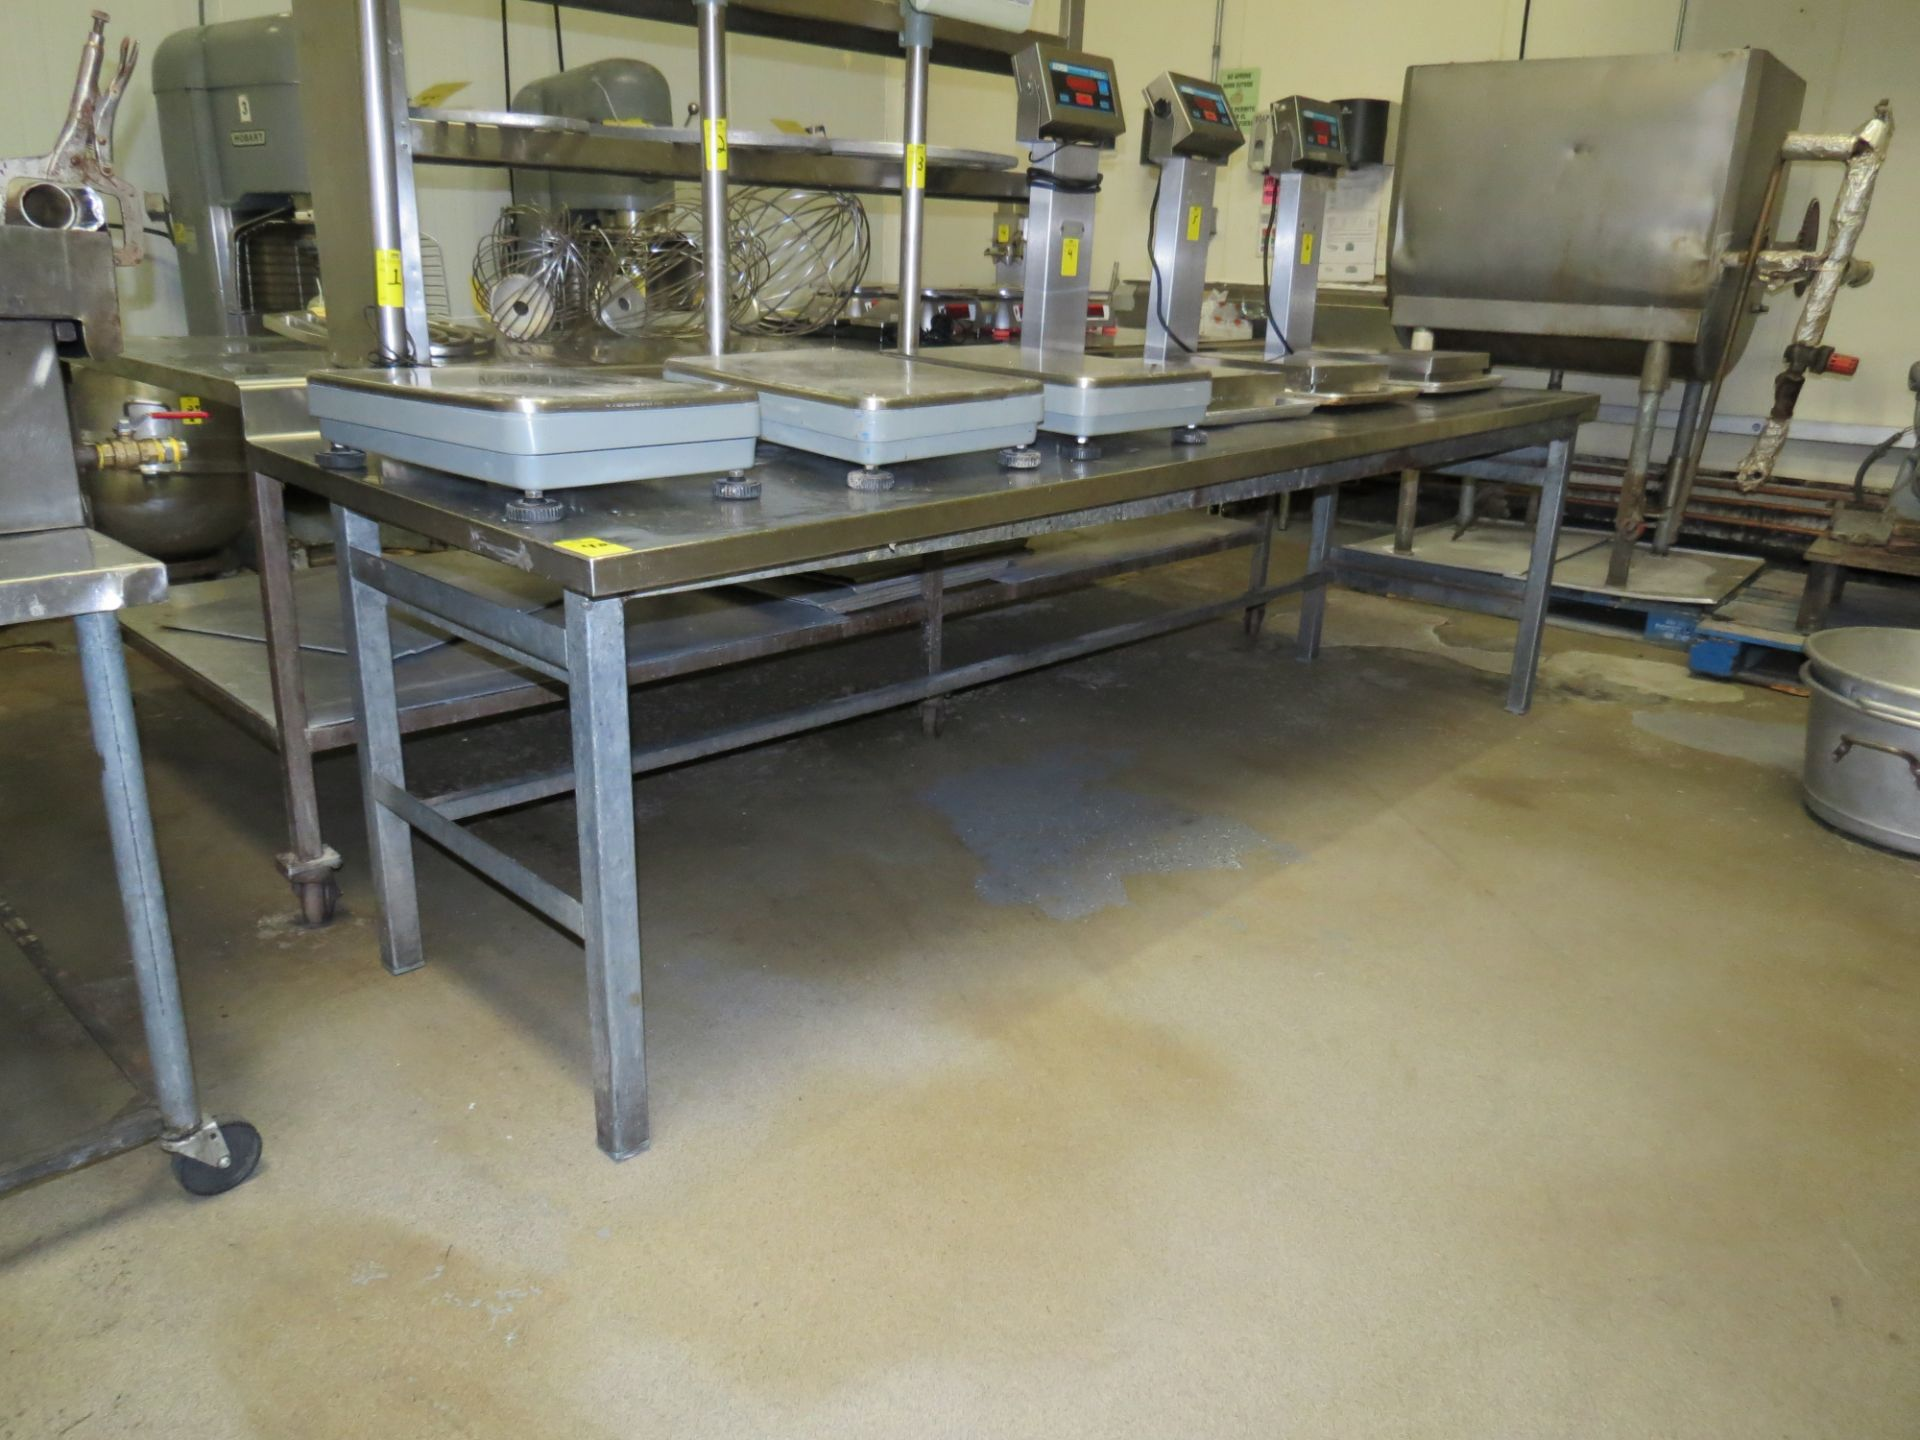 Lot 42 - STAINLESS STEEL TABLE APPROX. 3FT X 10FT